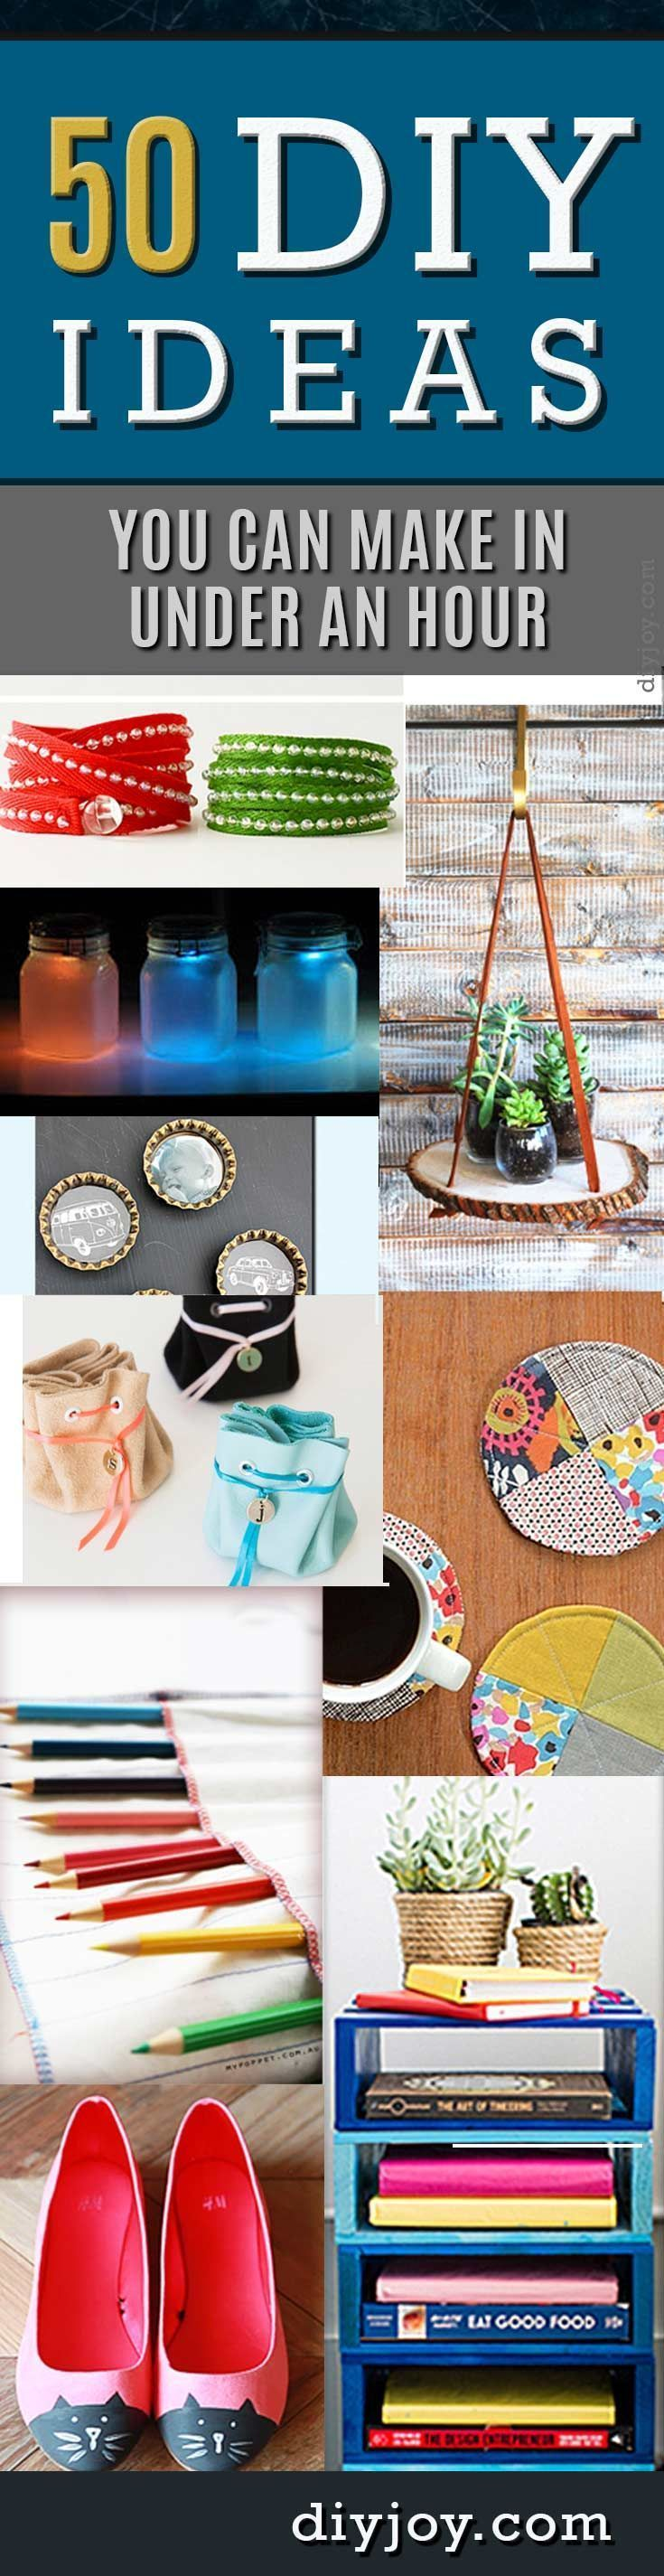 140 best diy joy images on pinterest boas desert recipes and 50 diy projects you can make in under an hour solutioingenieria Image collections